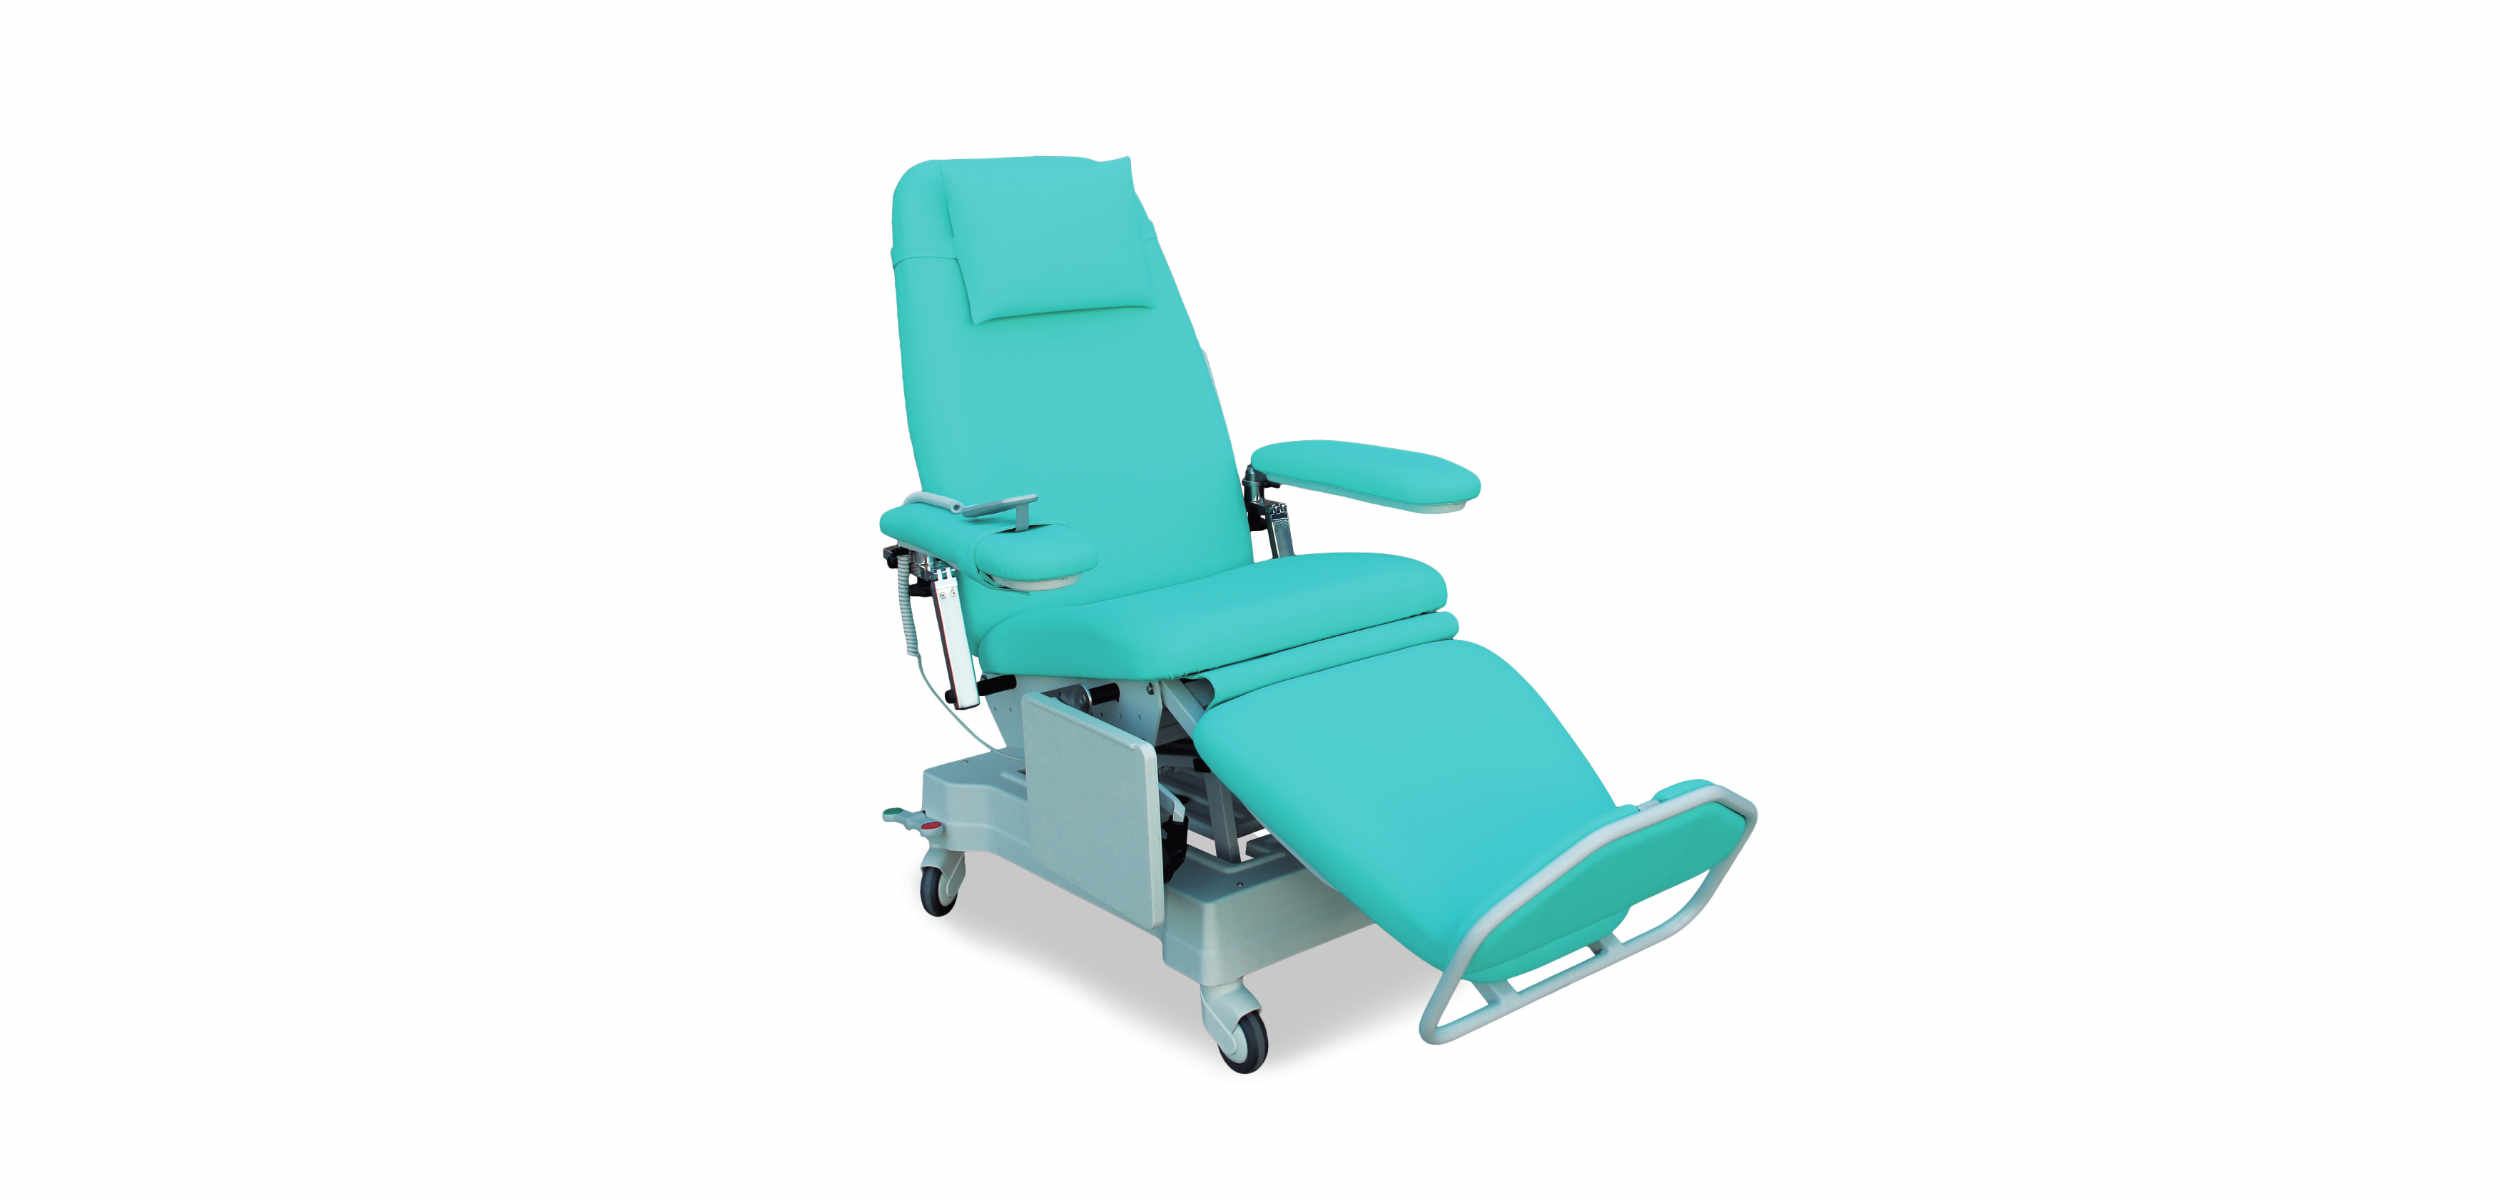 Actualway therapy chair Serie II